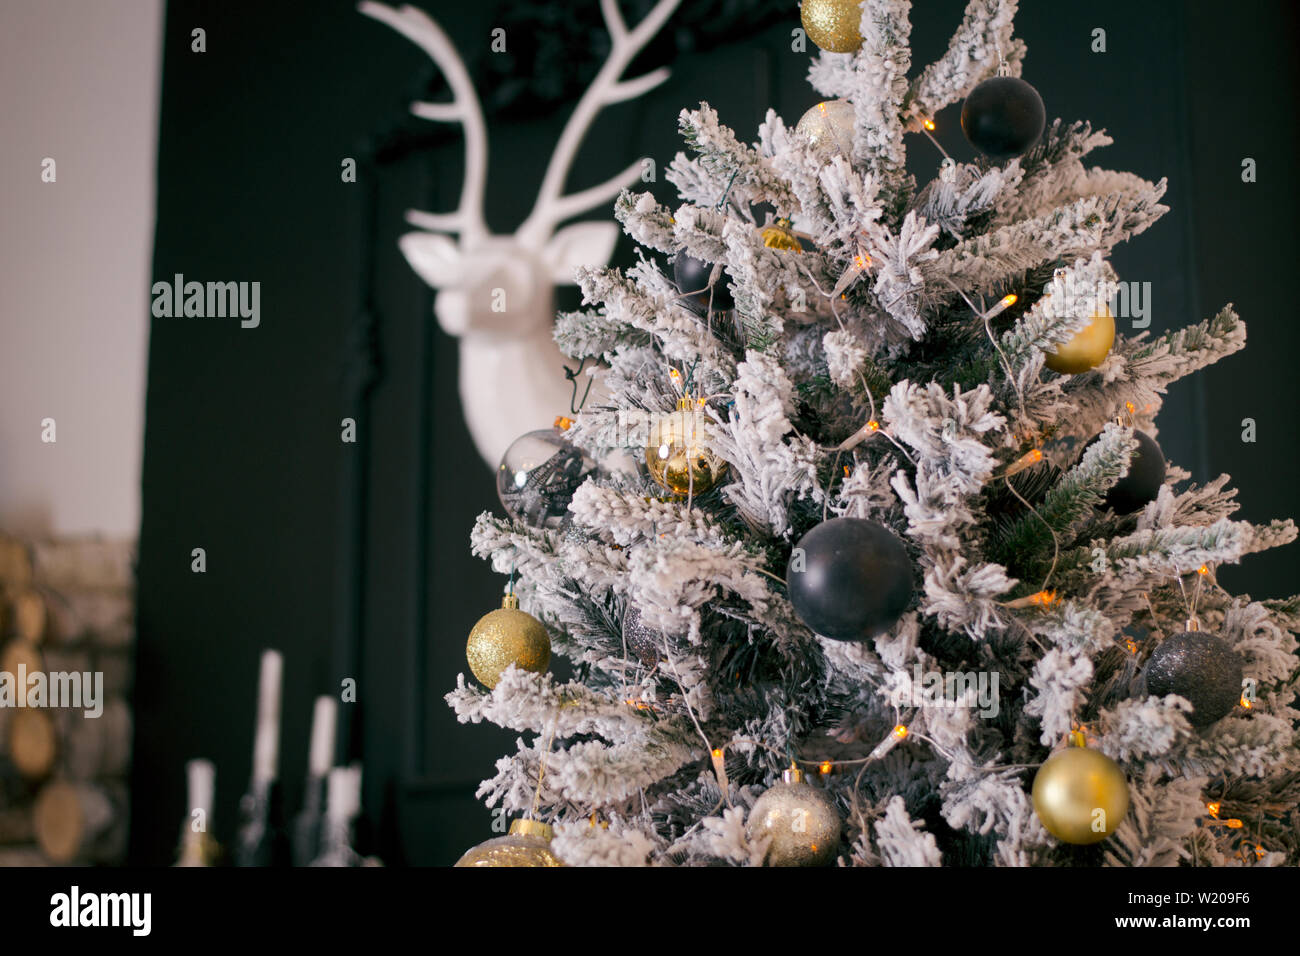 Dark Green Christmas Tree With White Artificial Snow On It Indoors Gothic Christmas Tree With Gold And Dark Blue Ornaments Dark Christmas Interior W Stock Photo Alamy